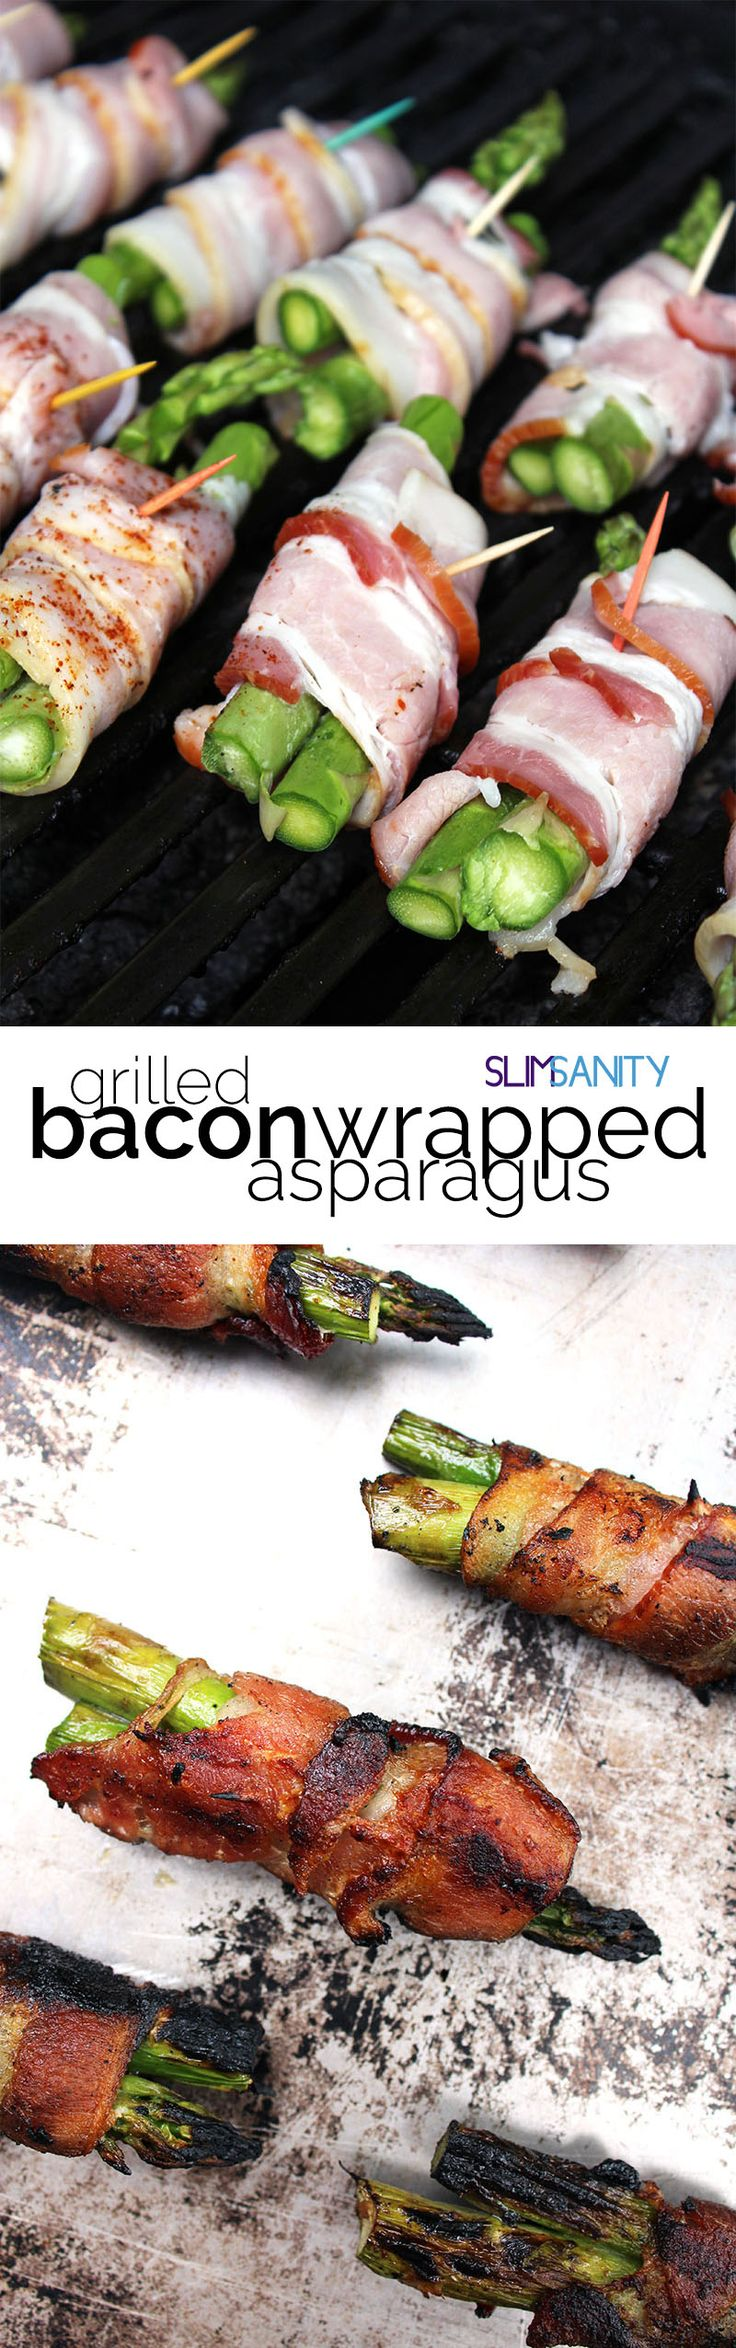 Grilled bacon-wrapped asparagus - the perfect appetizer for your next cookout!